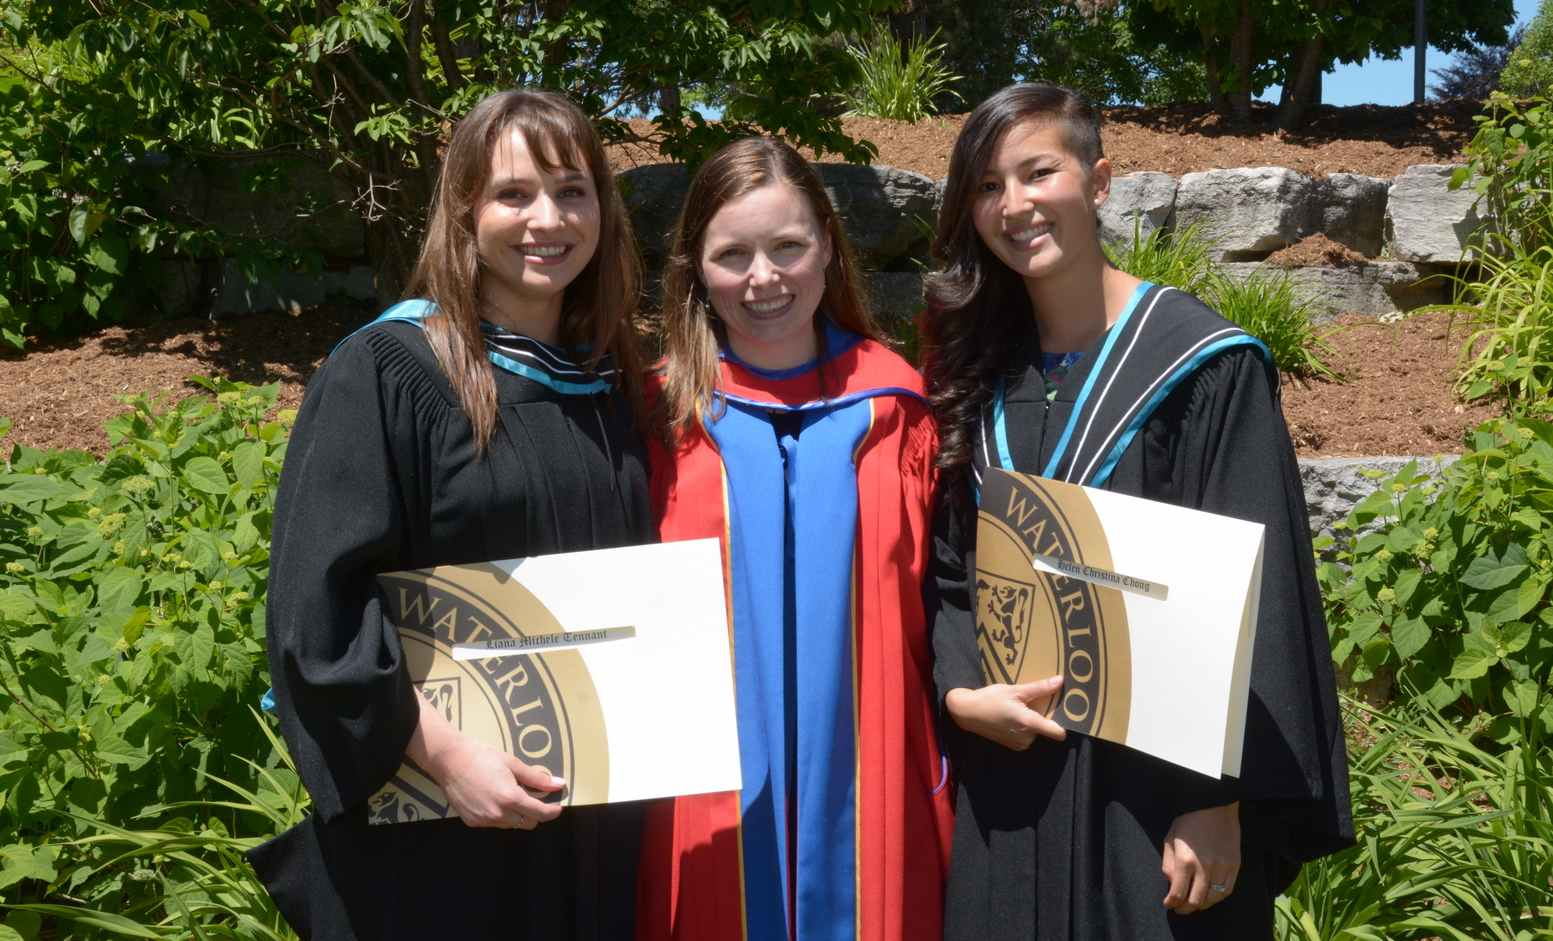 Helen Chong, Liana Tennant, and Stacey Acker in ceremonial robes